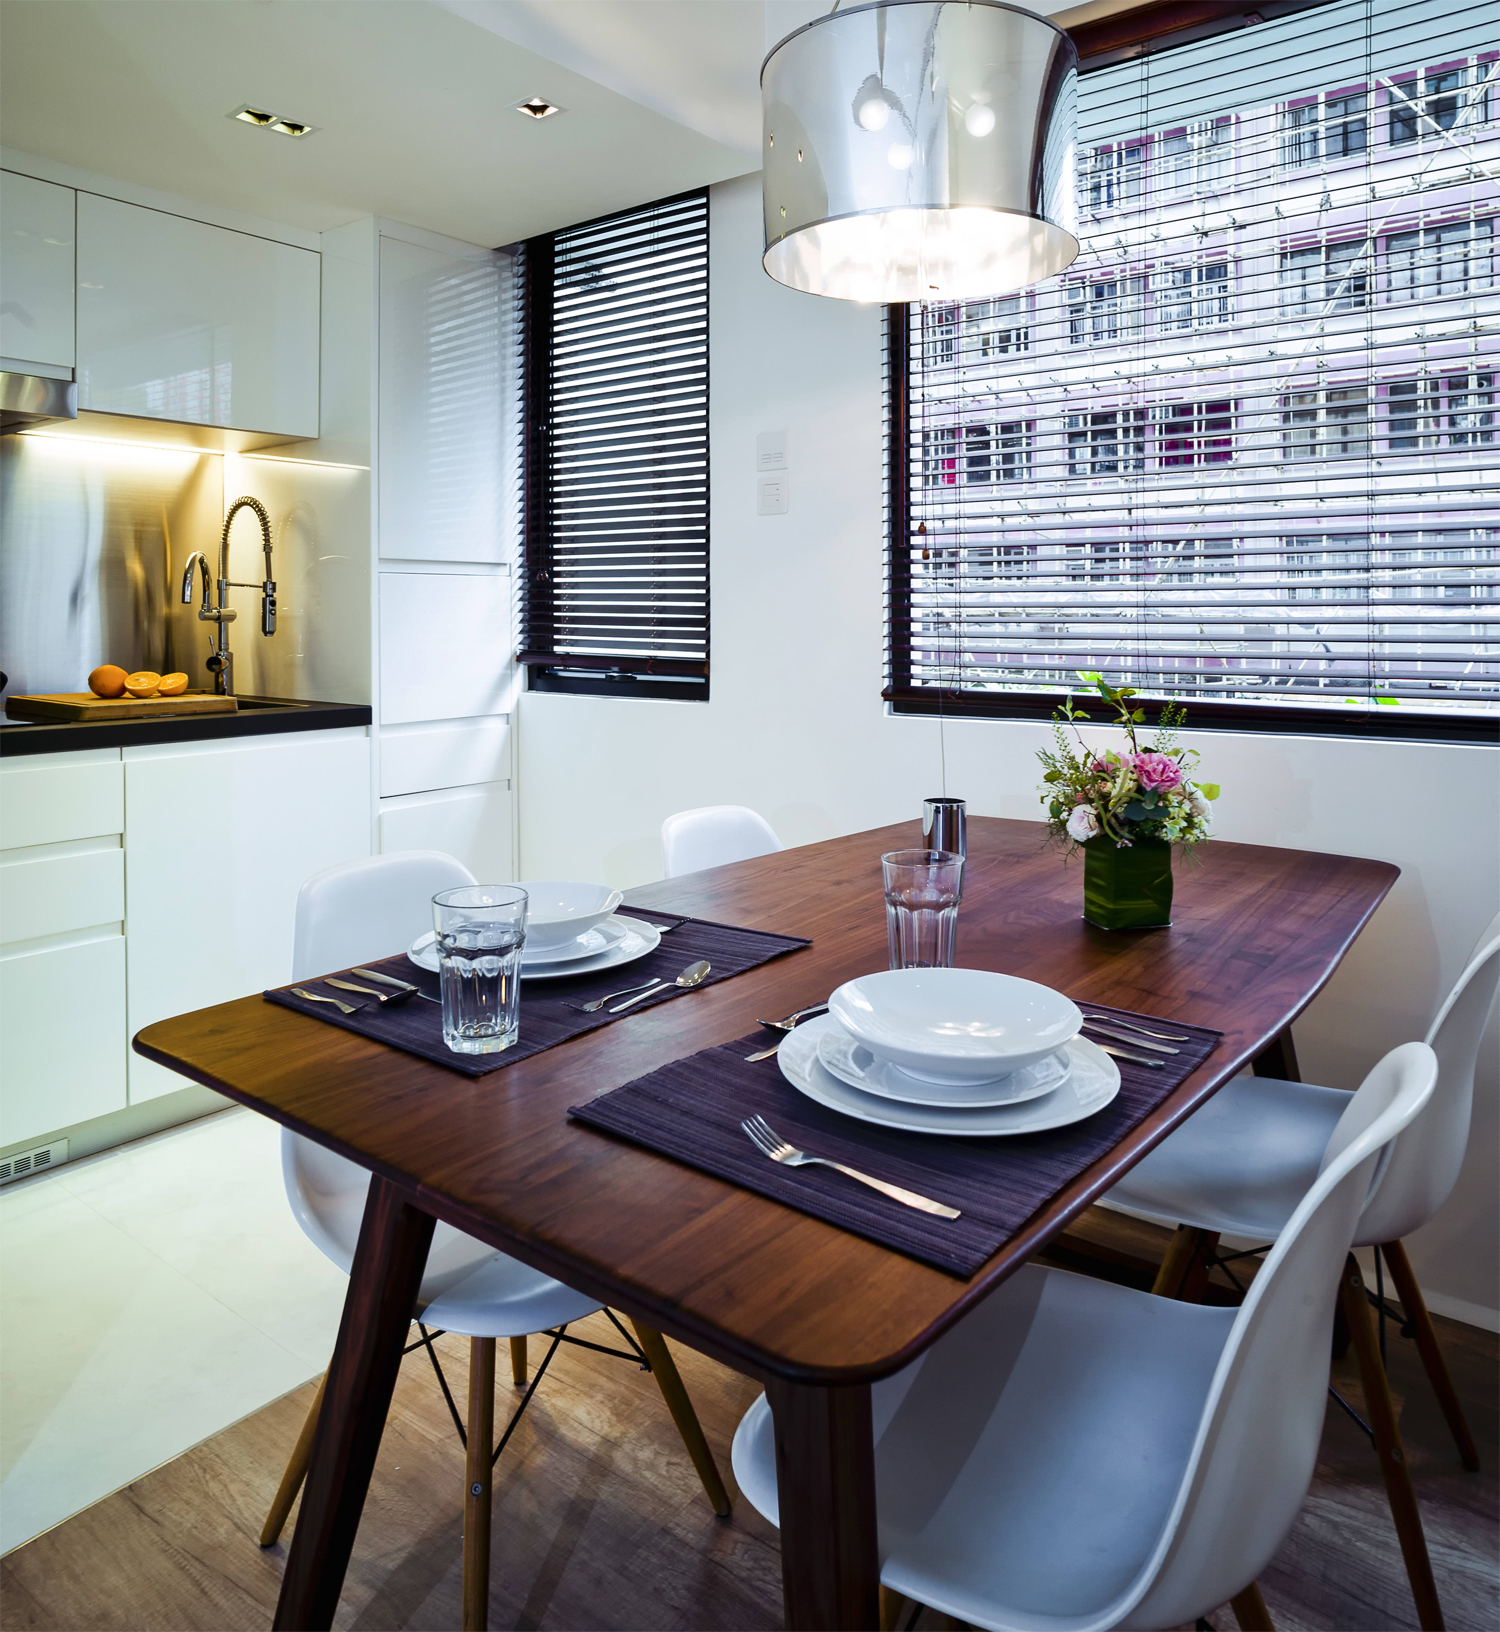 Fungs Kitchen: Architect Makes Small Flat A Tranquil Haven In Heart Of